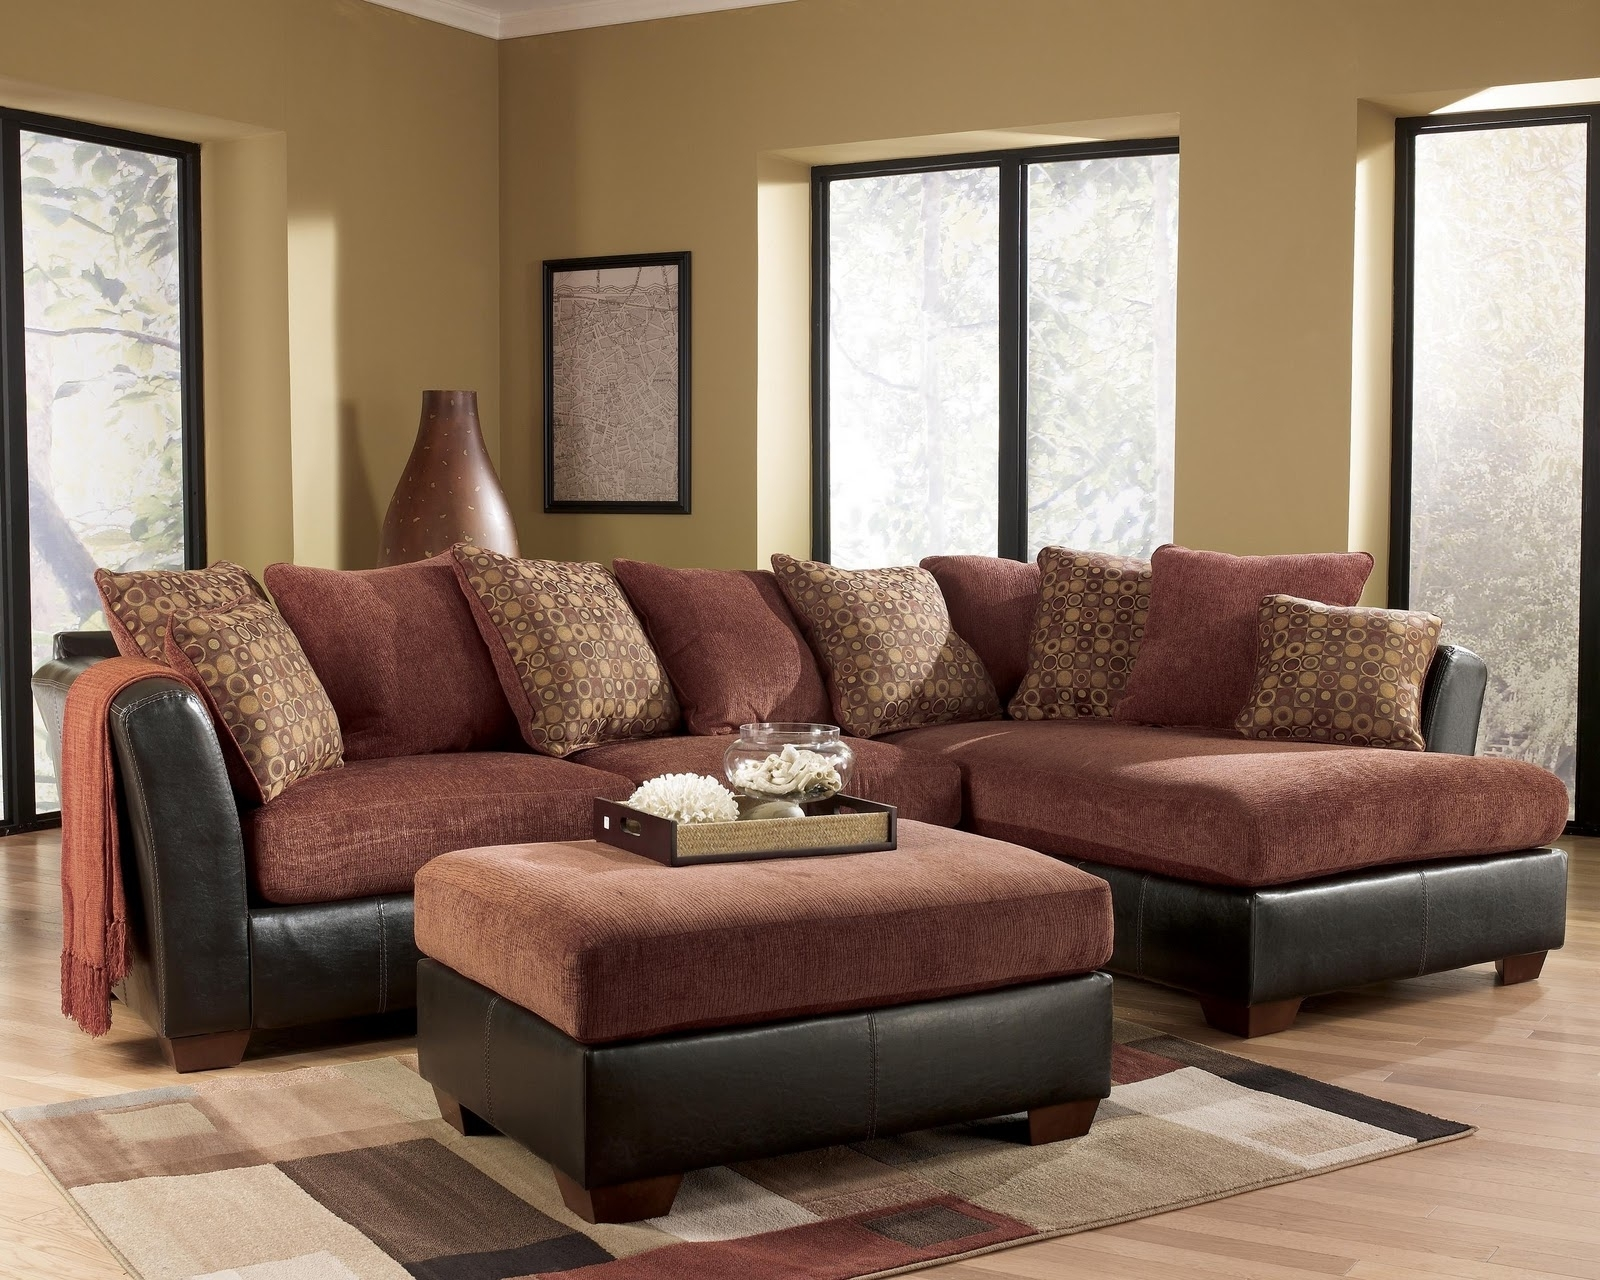 10x8 Sectional Sofas Regarding Preferred Awesome Ashley Furniture Sectional Chocolate Pictures (View 16 of 20)